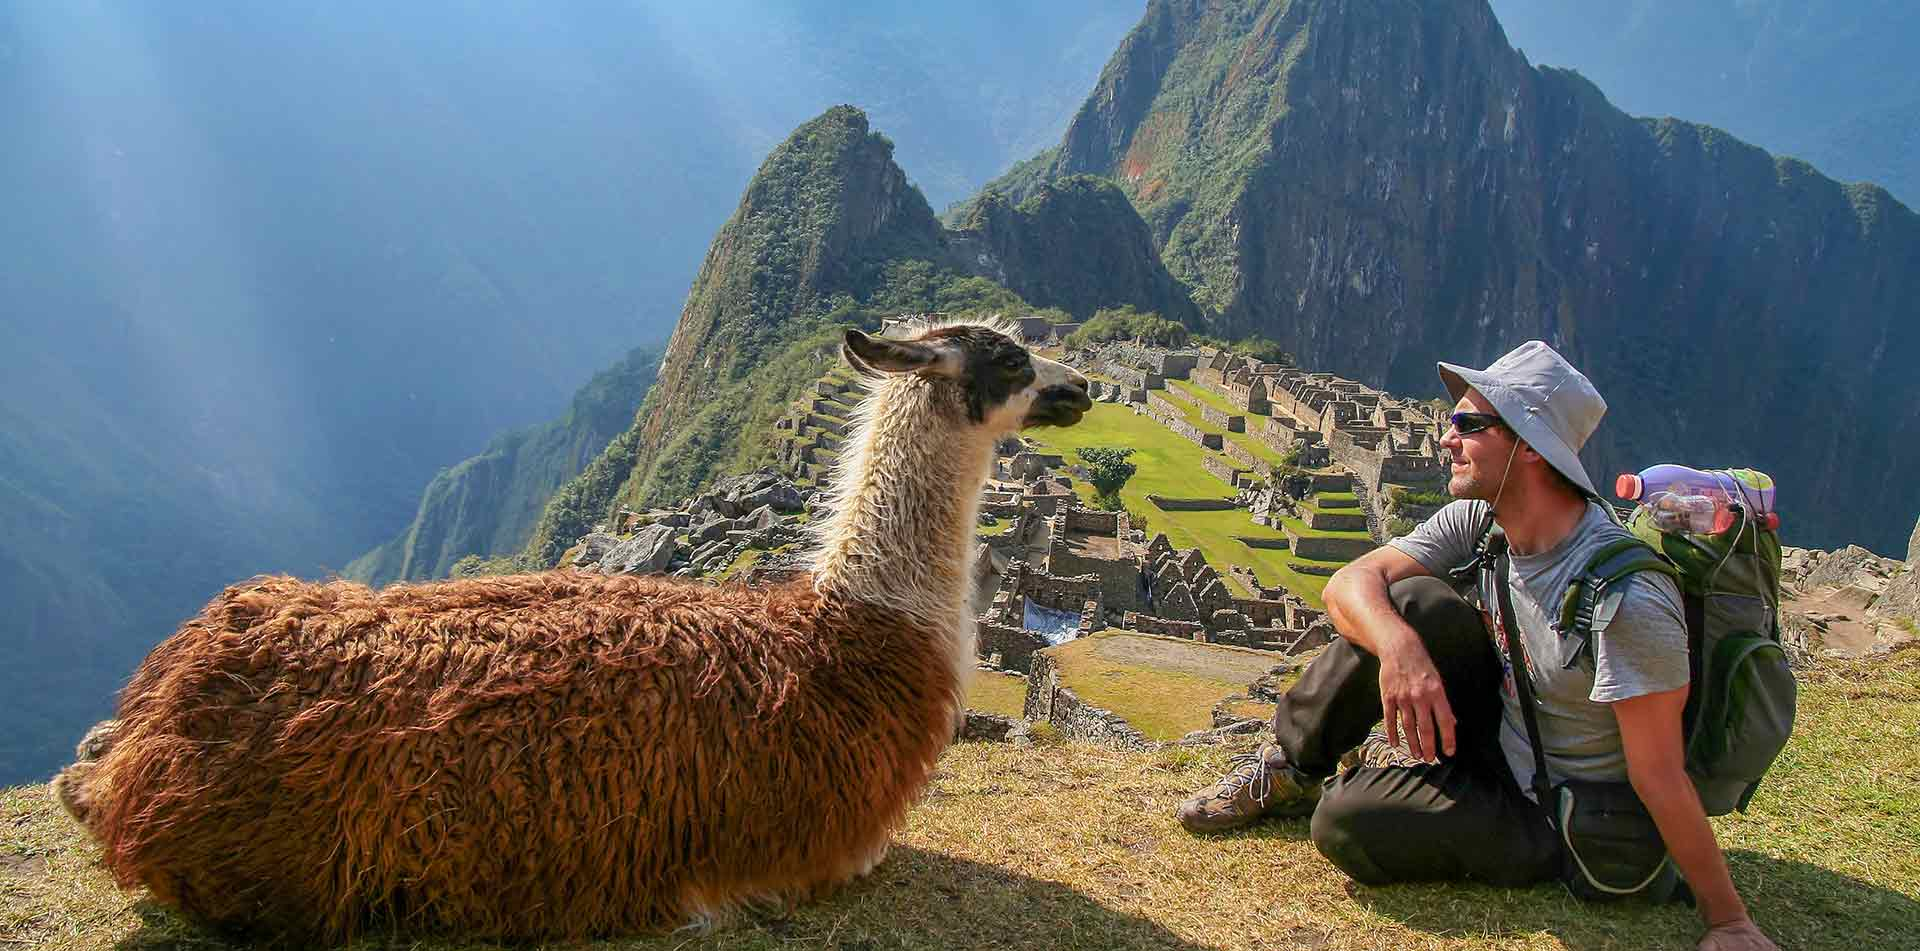 South America Peru Machu Picchu man and llama sitting staring in front of ancient Inca ruins - luxury vacation destinations